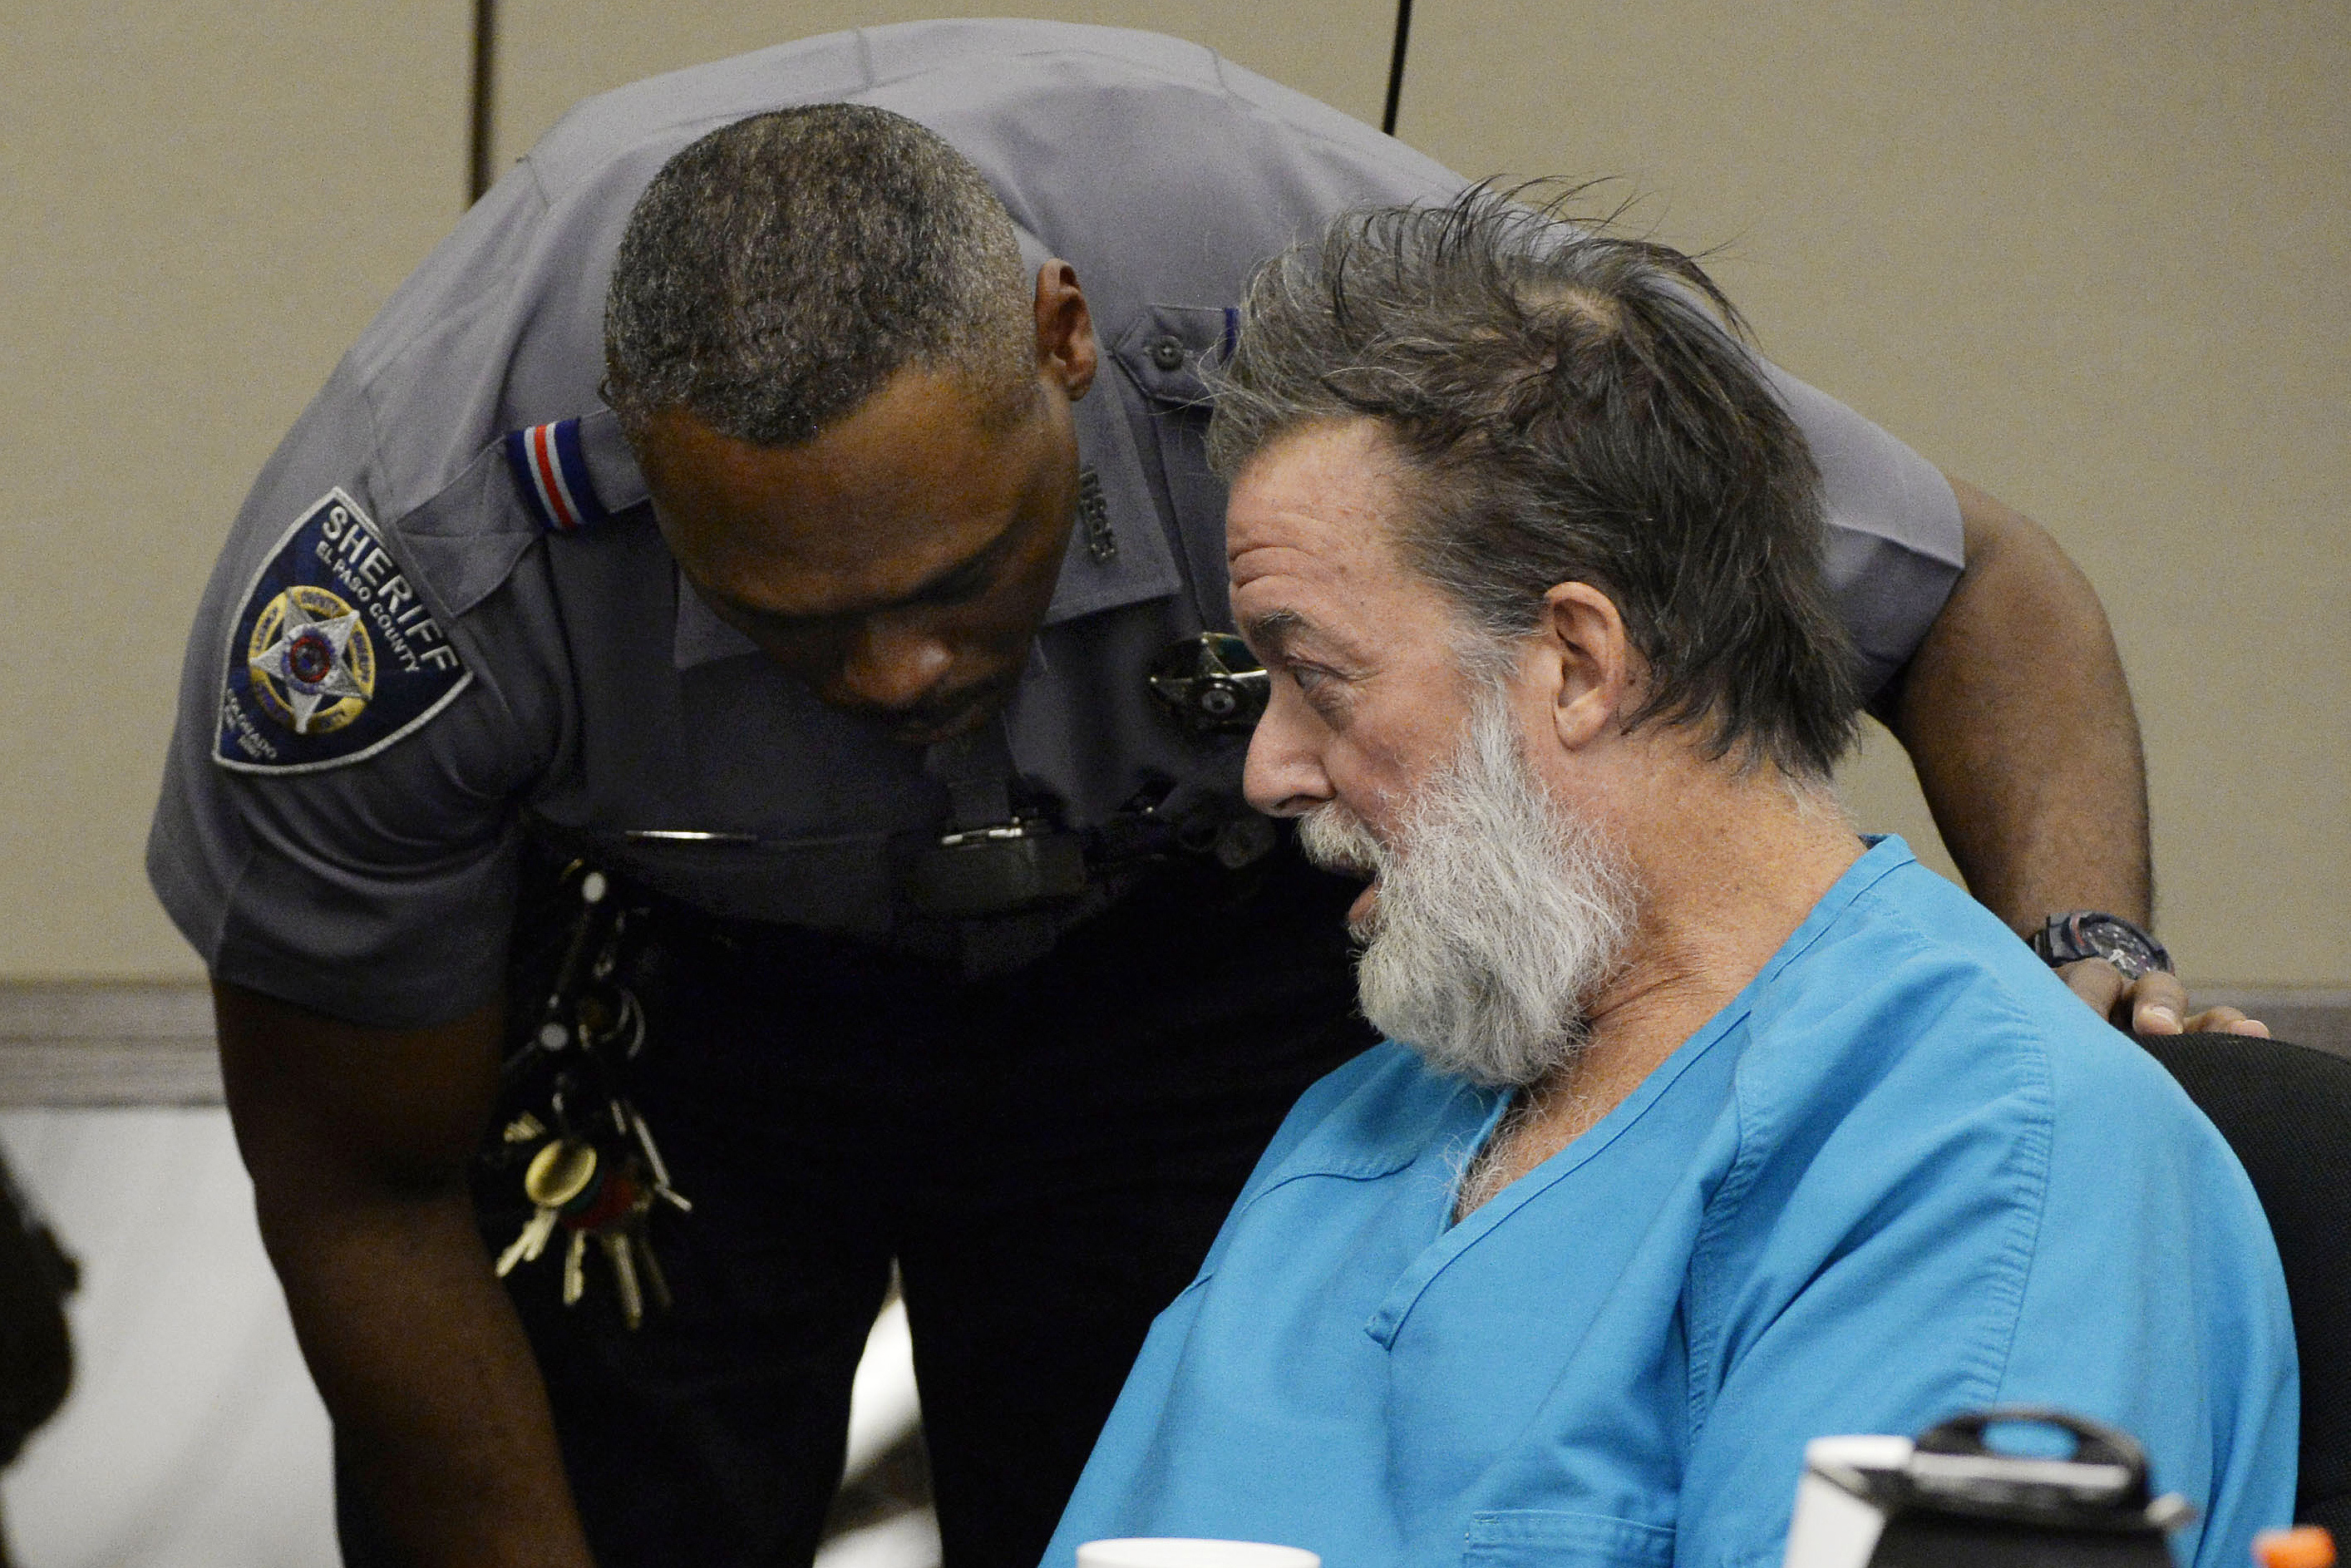 Photo: Robert Dear In Court (AP/FileDec. 9, 2015)